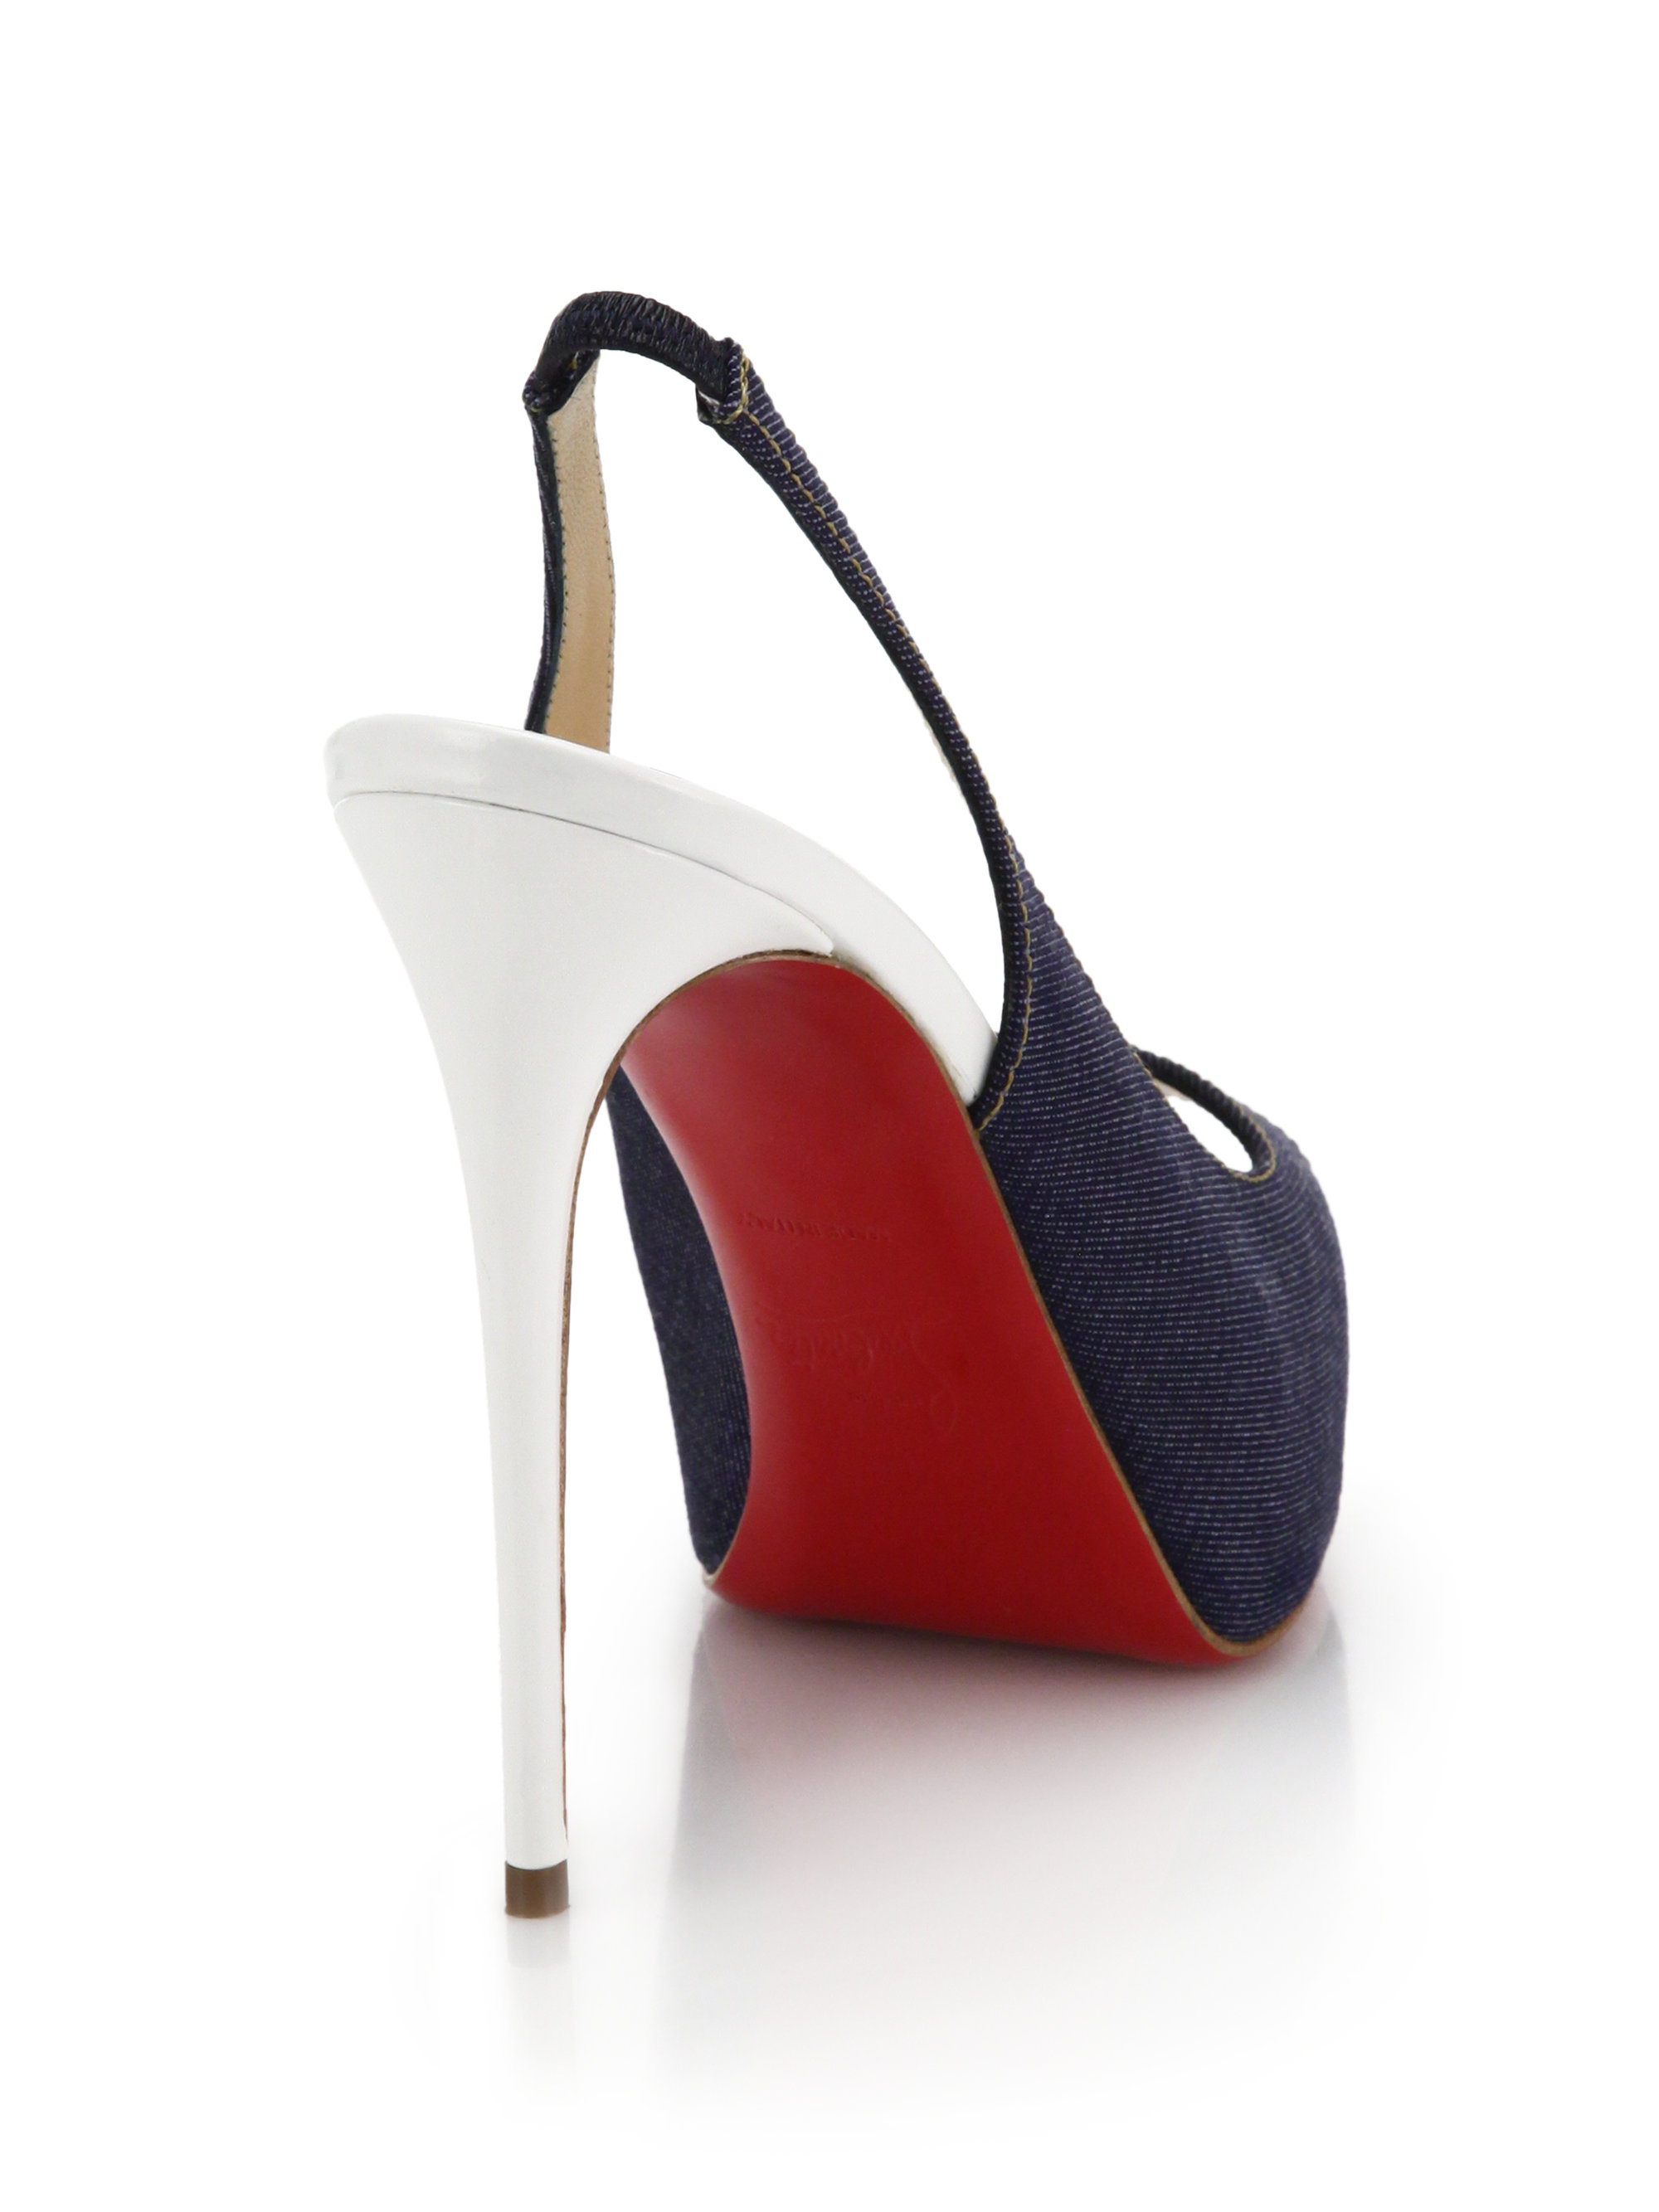 quality design 47e49 544c5 Artesur » christian louboutin Private Number' peep-toe pumps ...